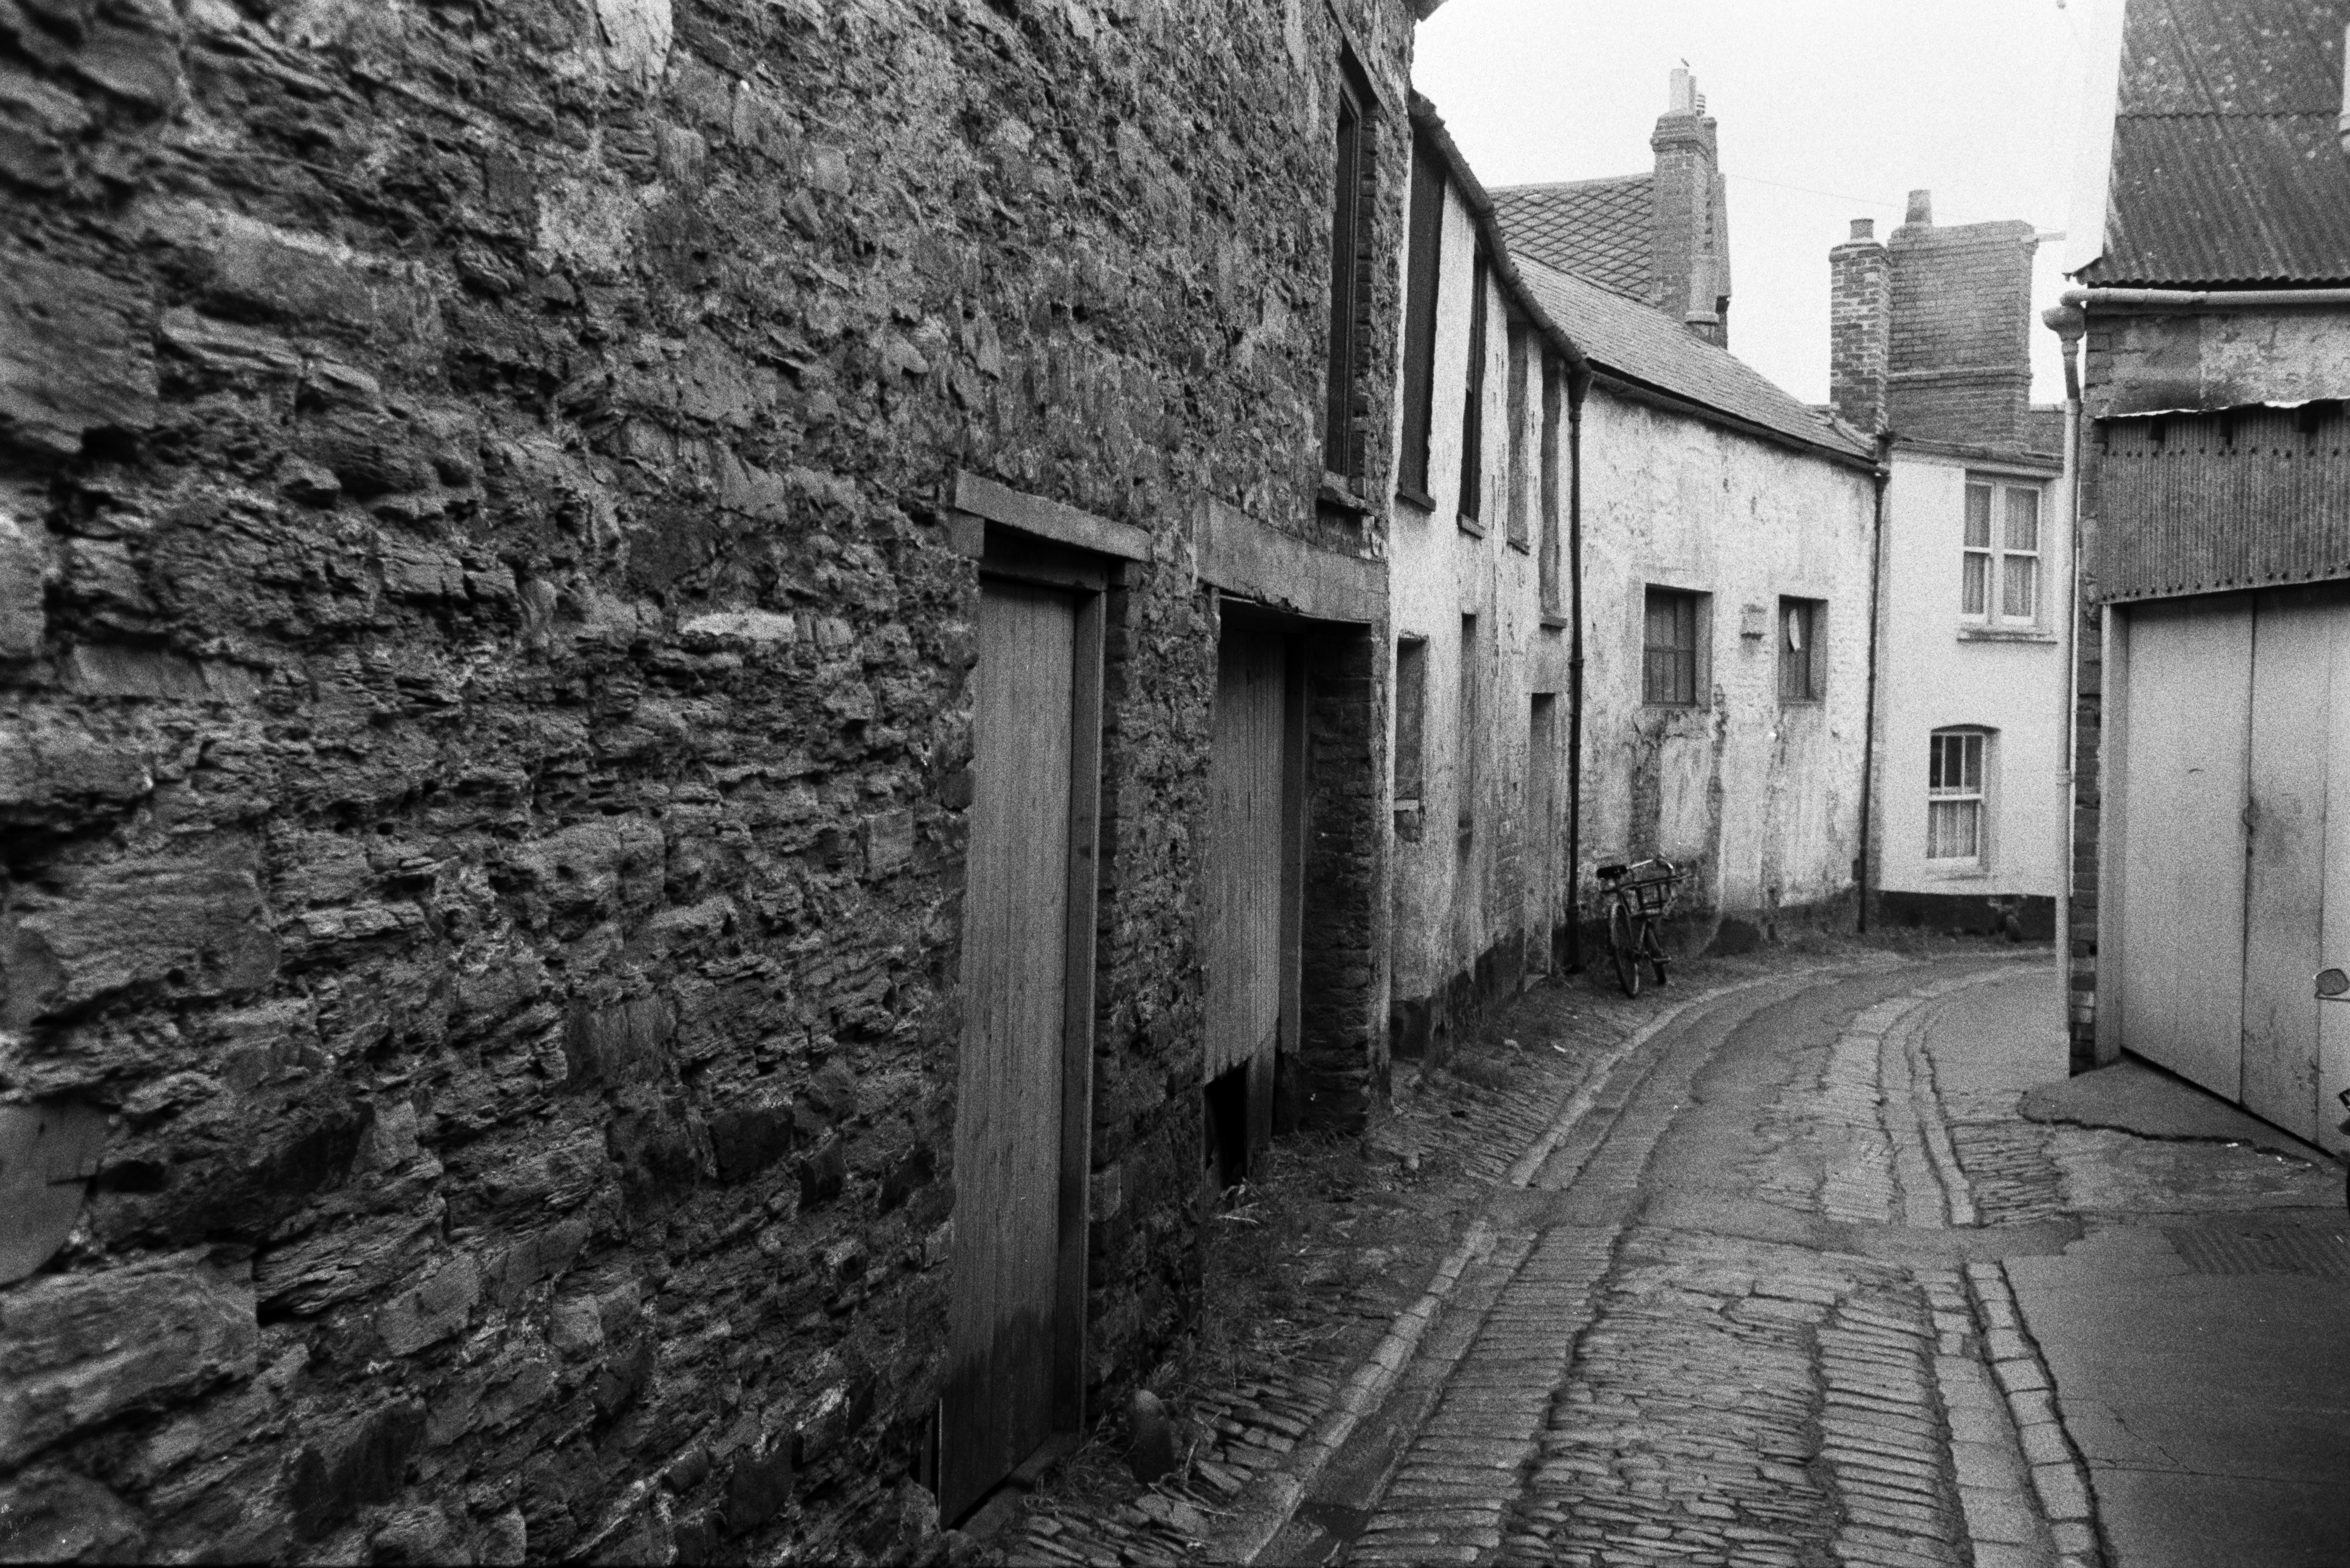 A narrow cobbled street with terraced houses in Barnstaple. A bicycle is parked outside one of the houses.